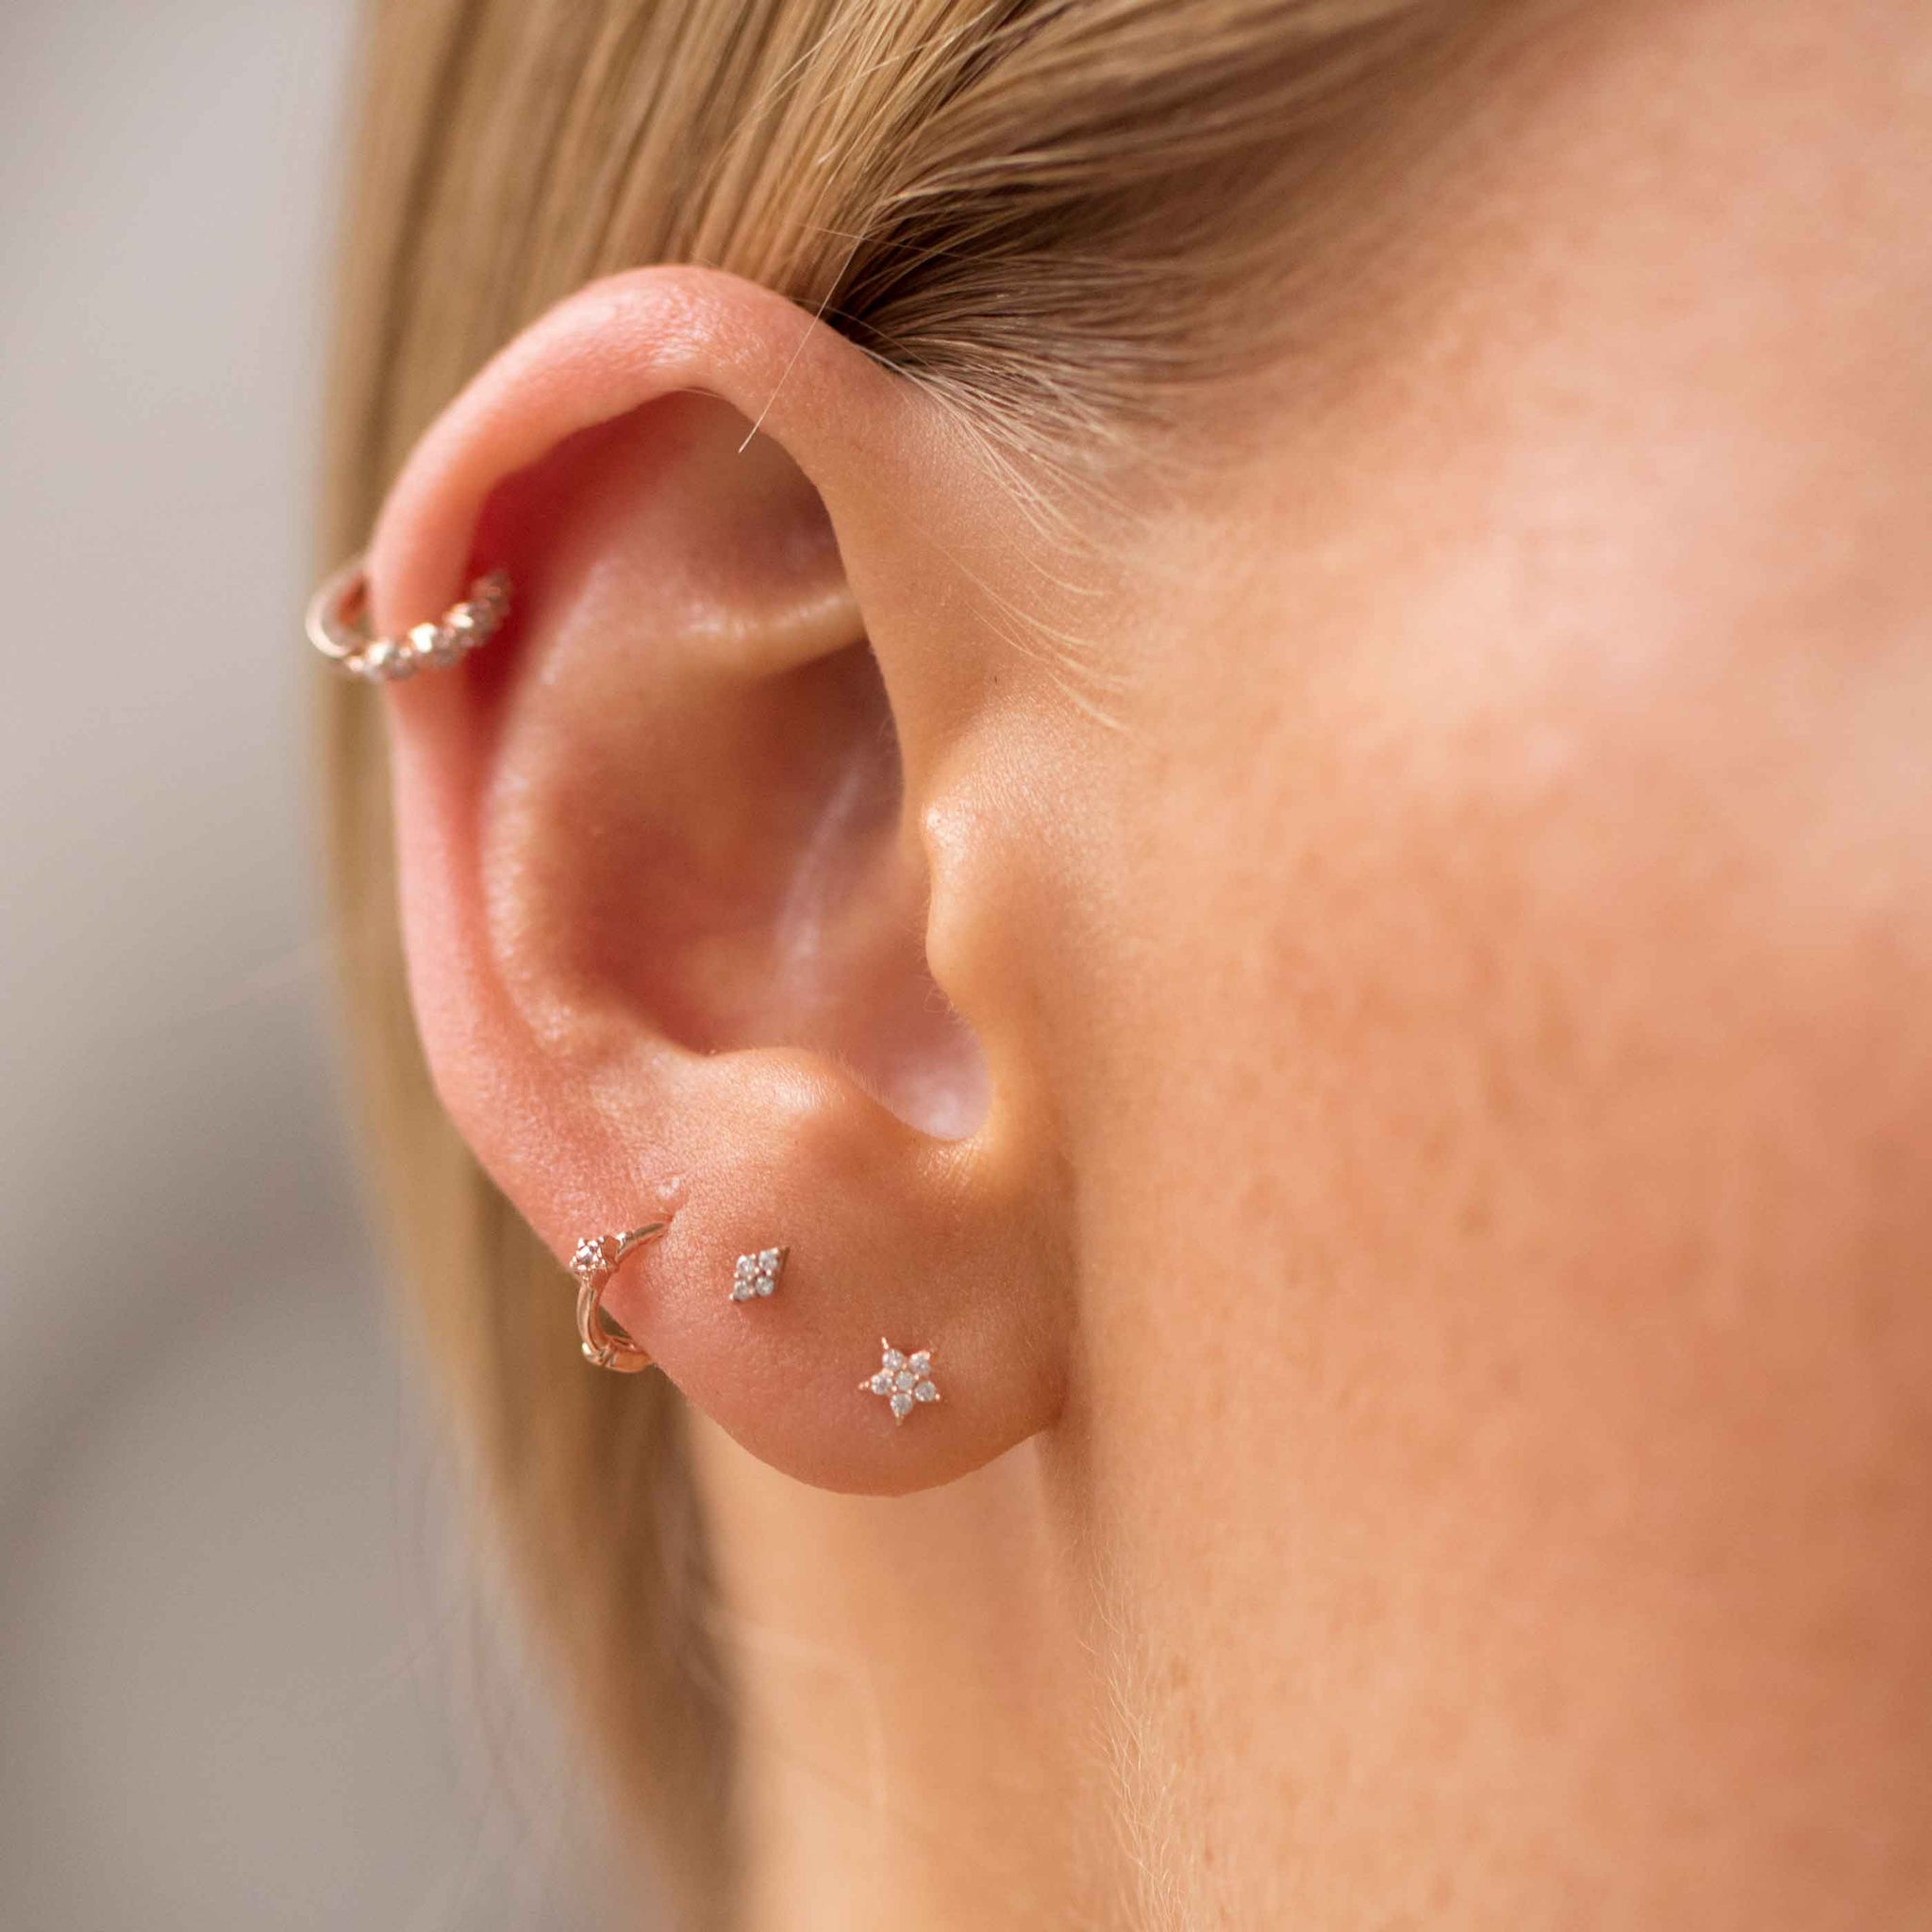 Gem Star Clicker in Rose Gold worn in third lobe piercing